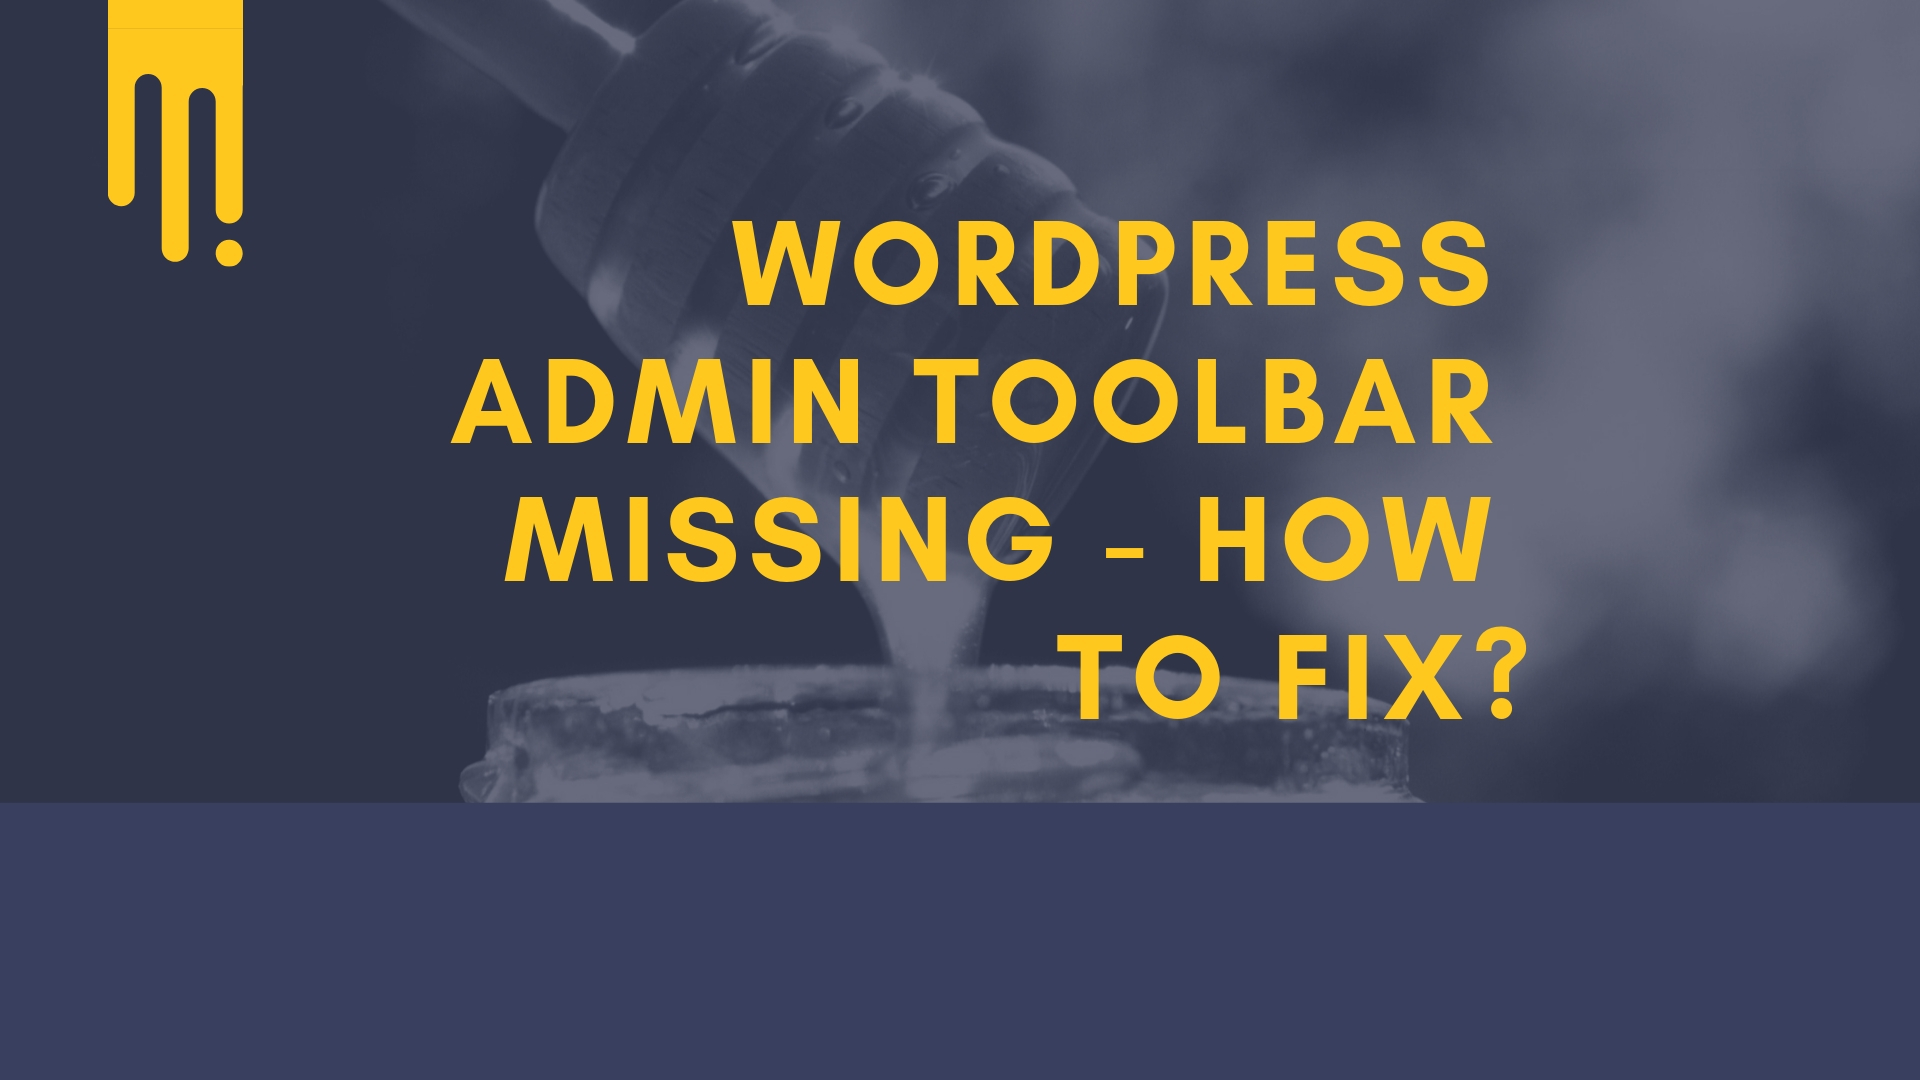 Wordpress admin toolbar missing - How to fix?